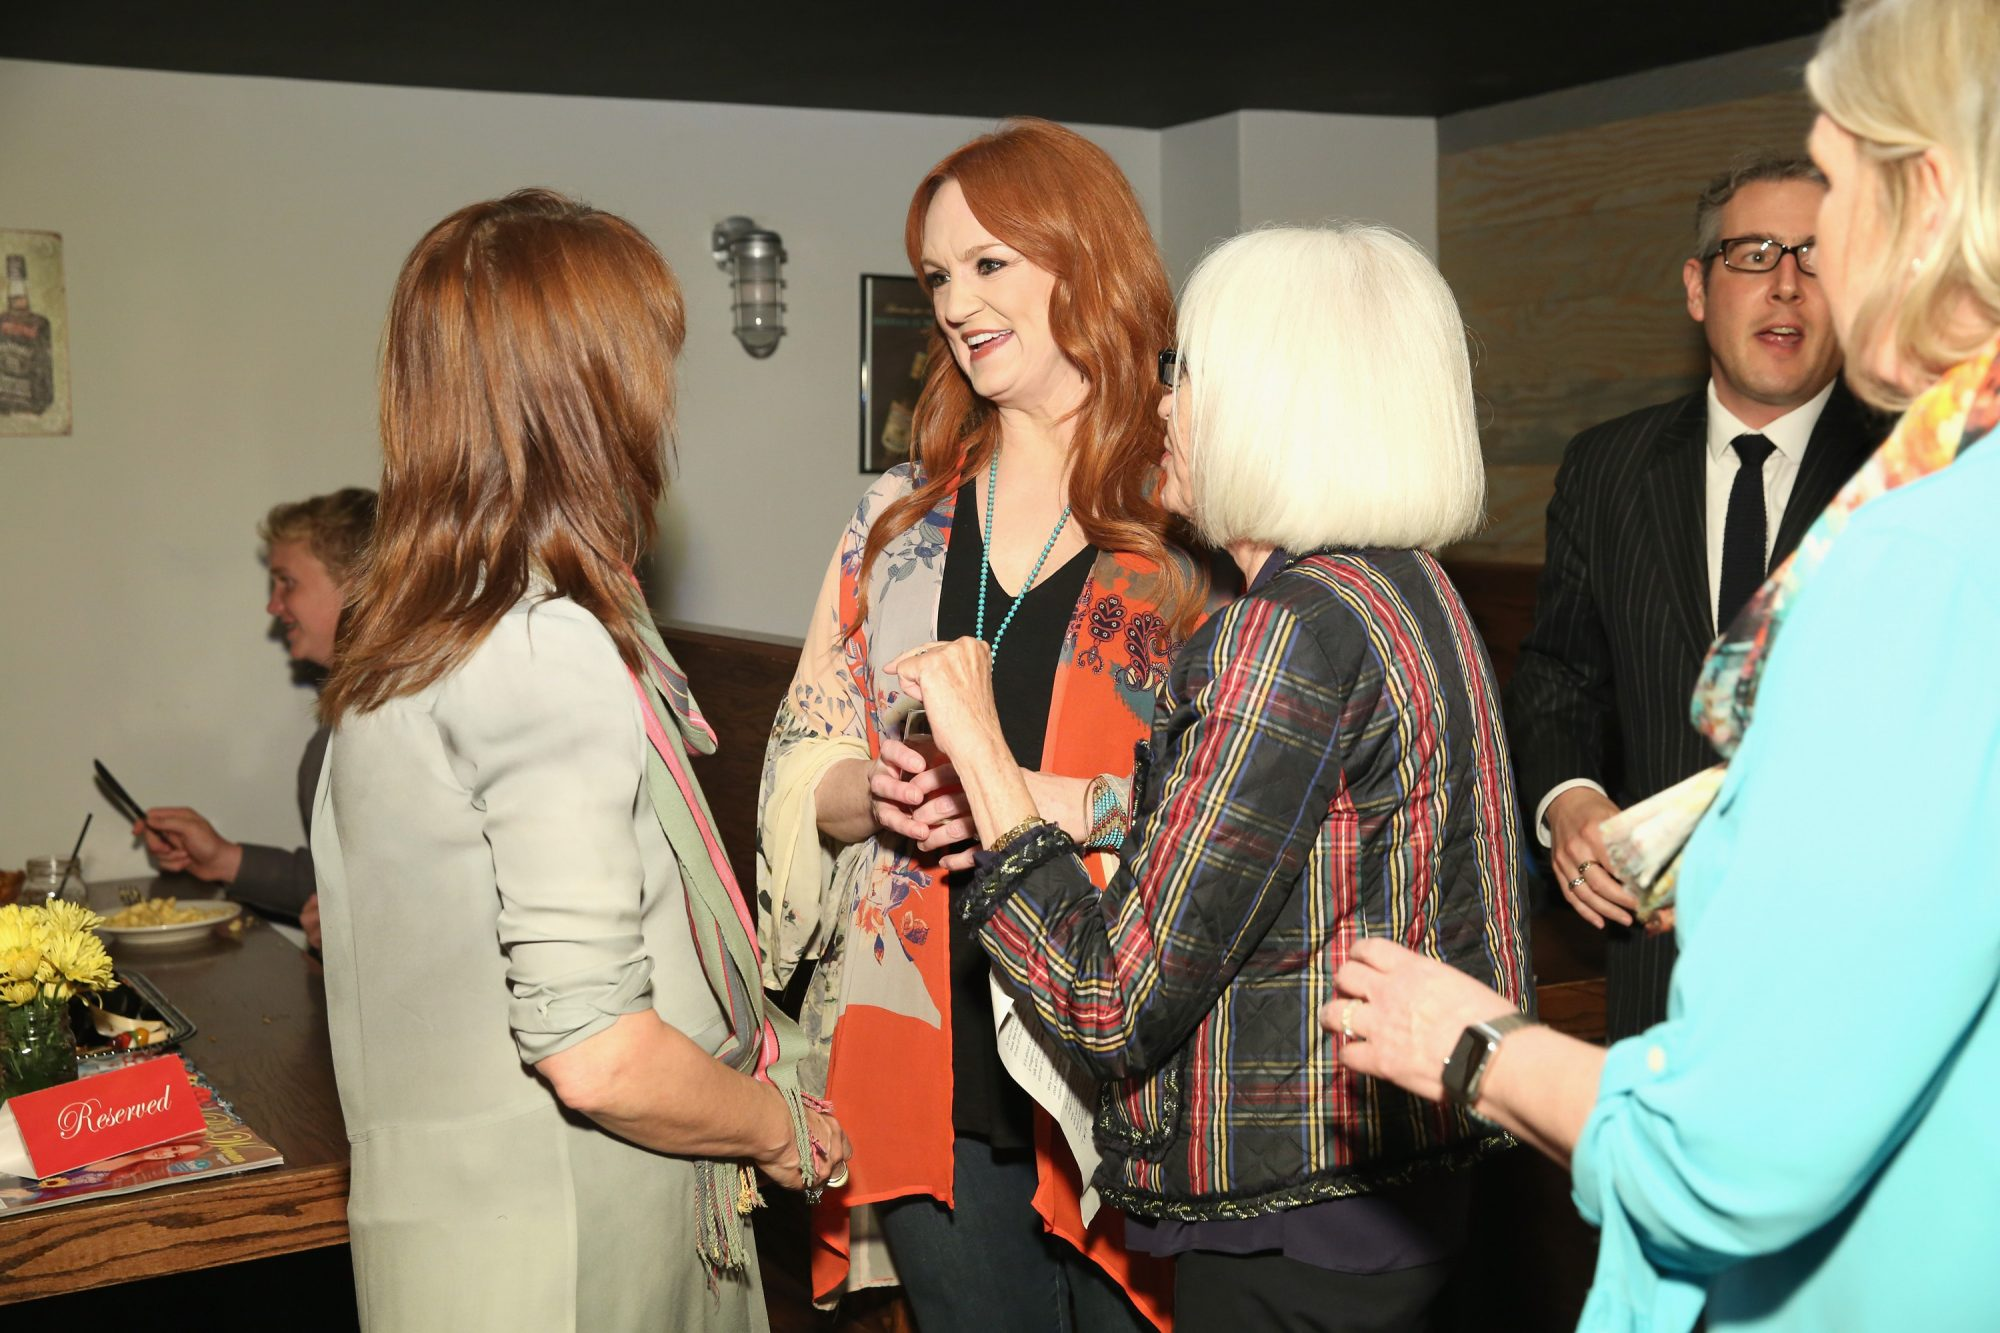 Pioneer Woman Ree Drummond in Crowd